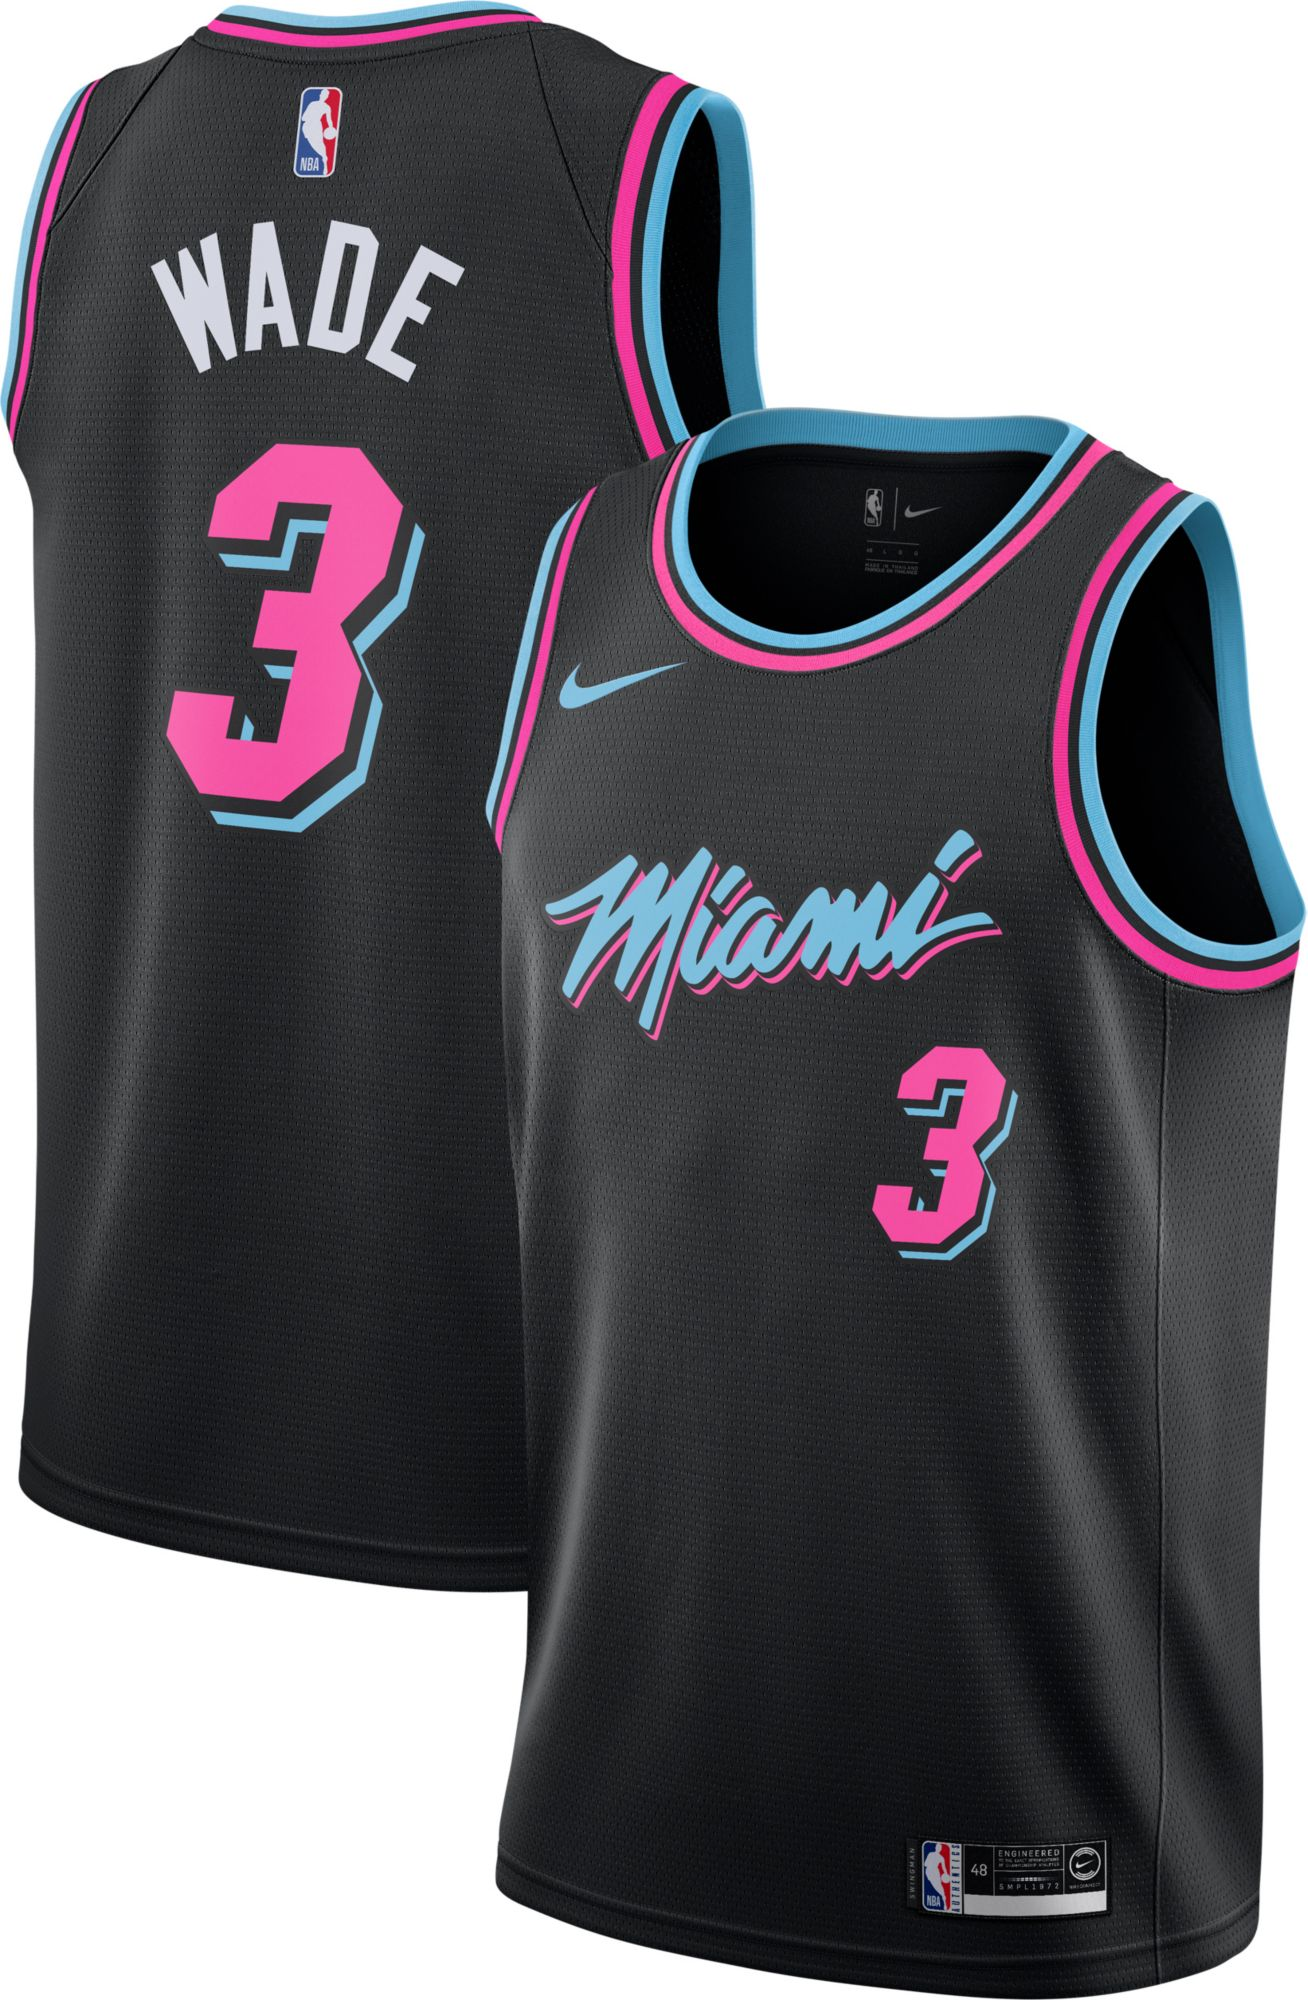 separation shoes 68a58 7dc65 Nike Men's Miami Heat Dwyane Wade Dri-FIT City Edition ...